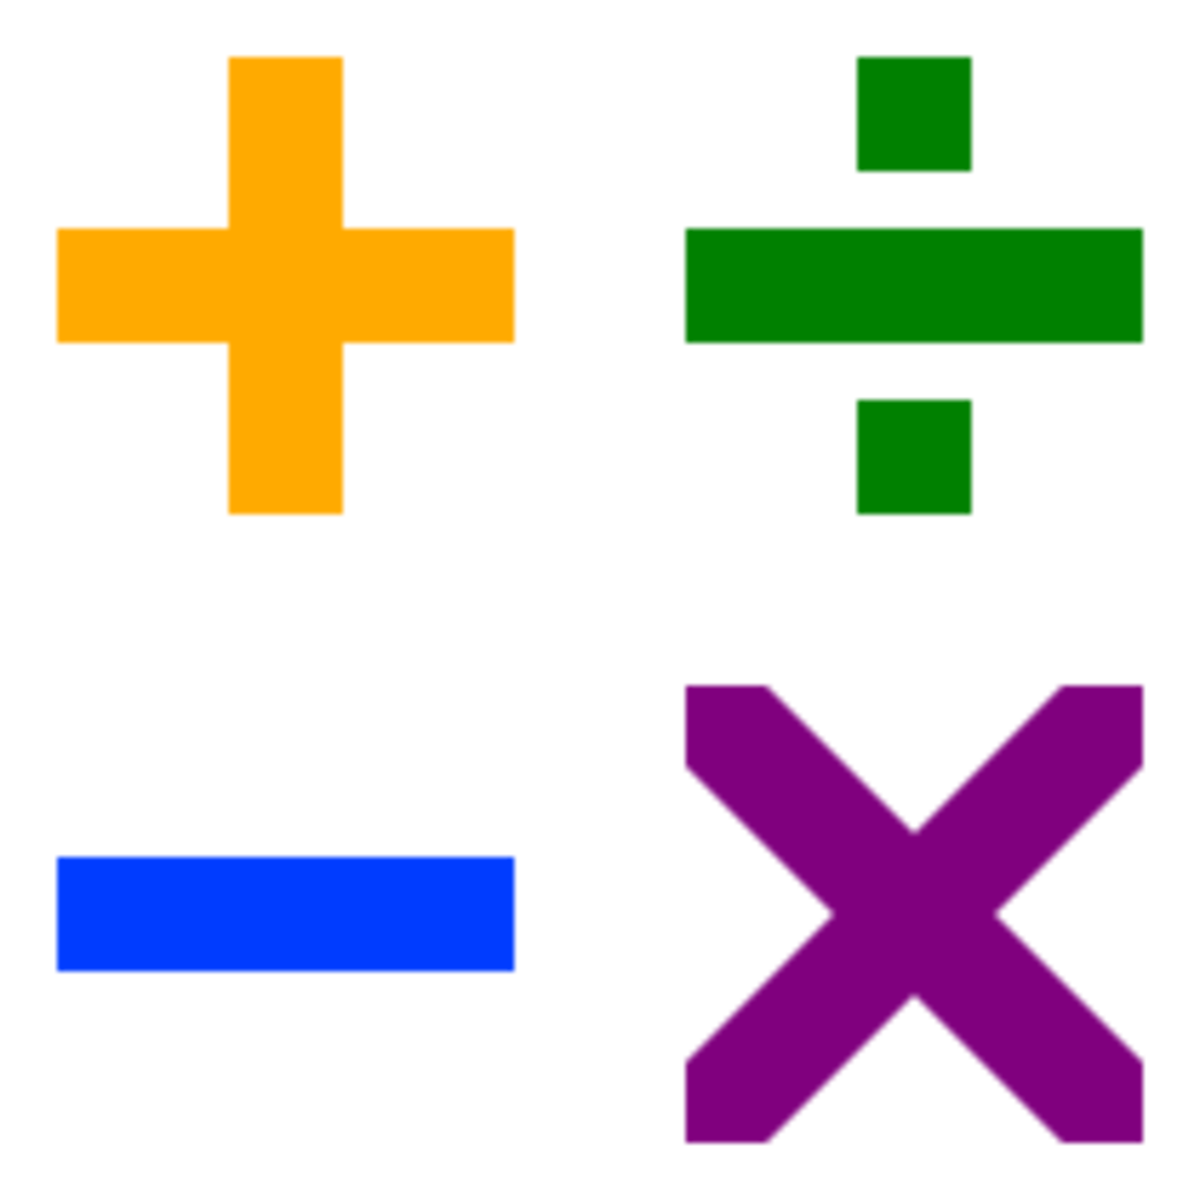 Addition, division, subtraction and multiplication symbols